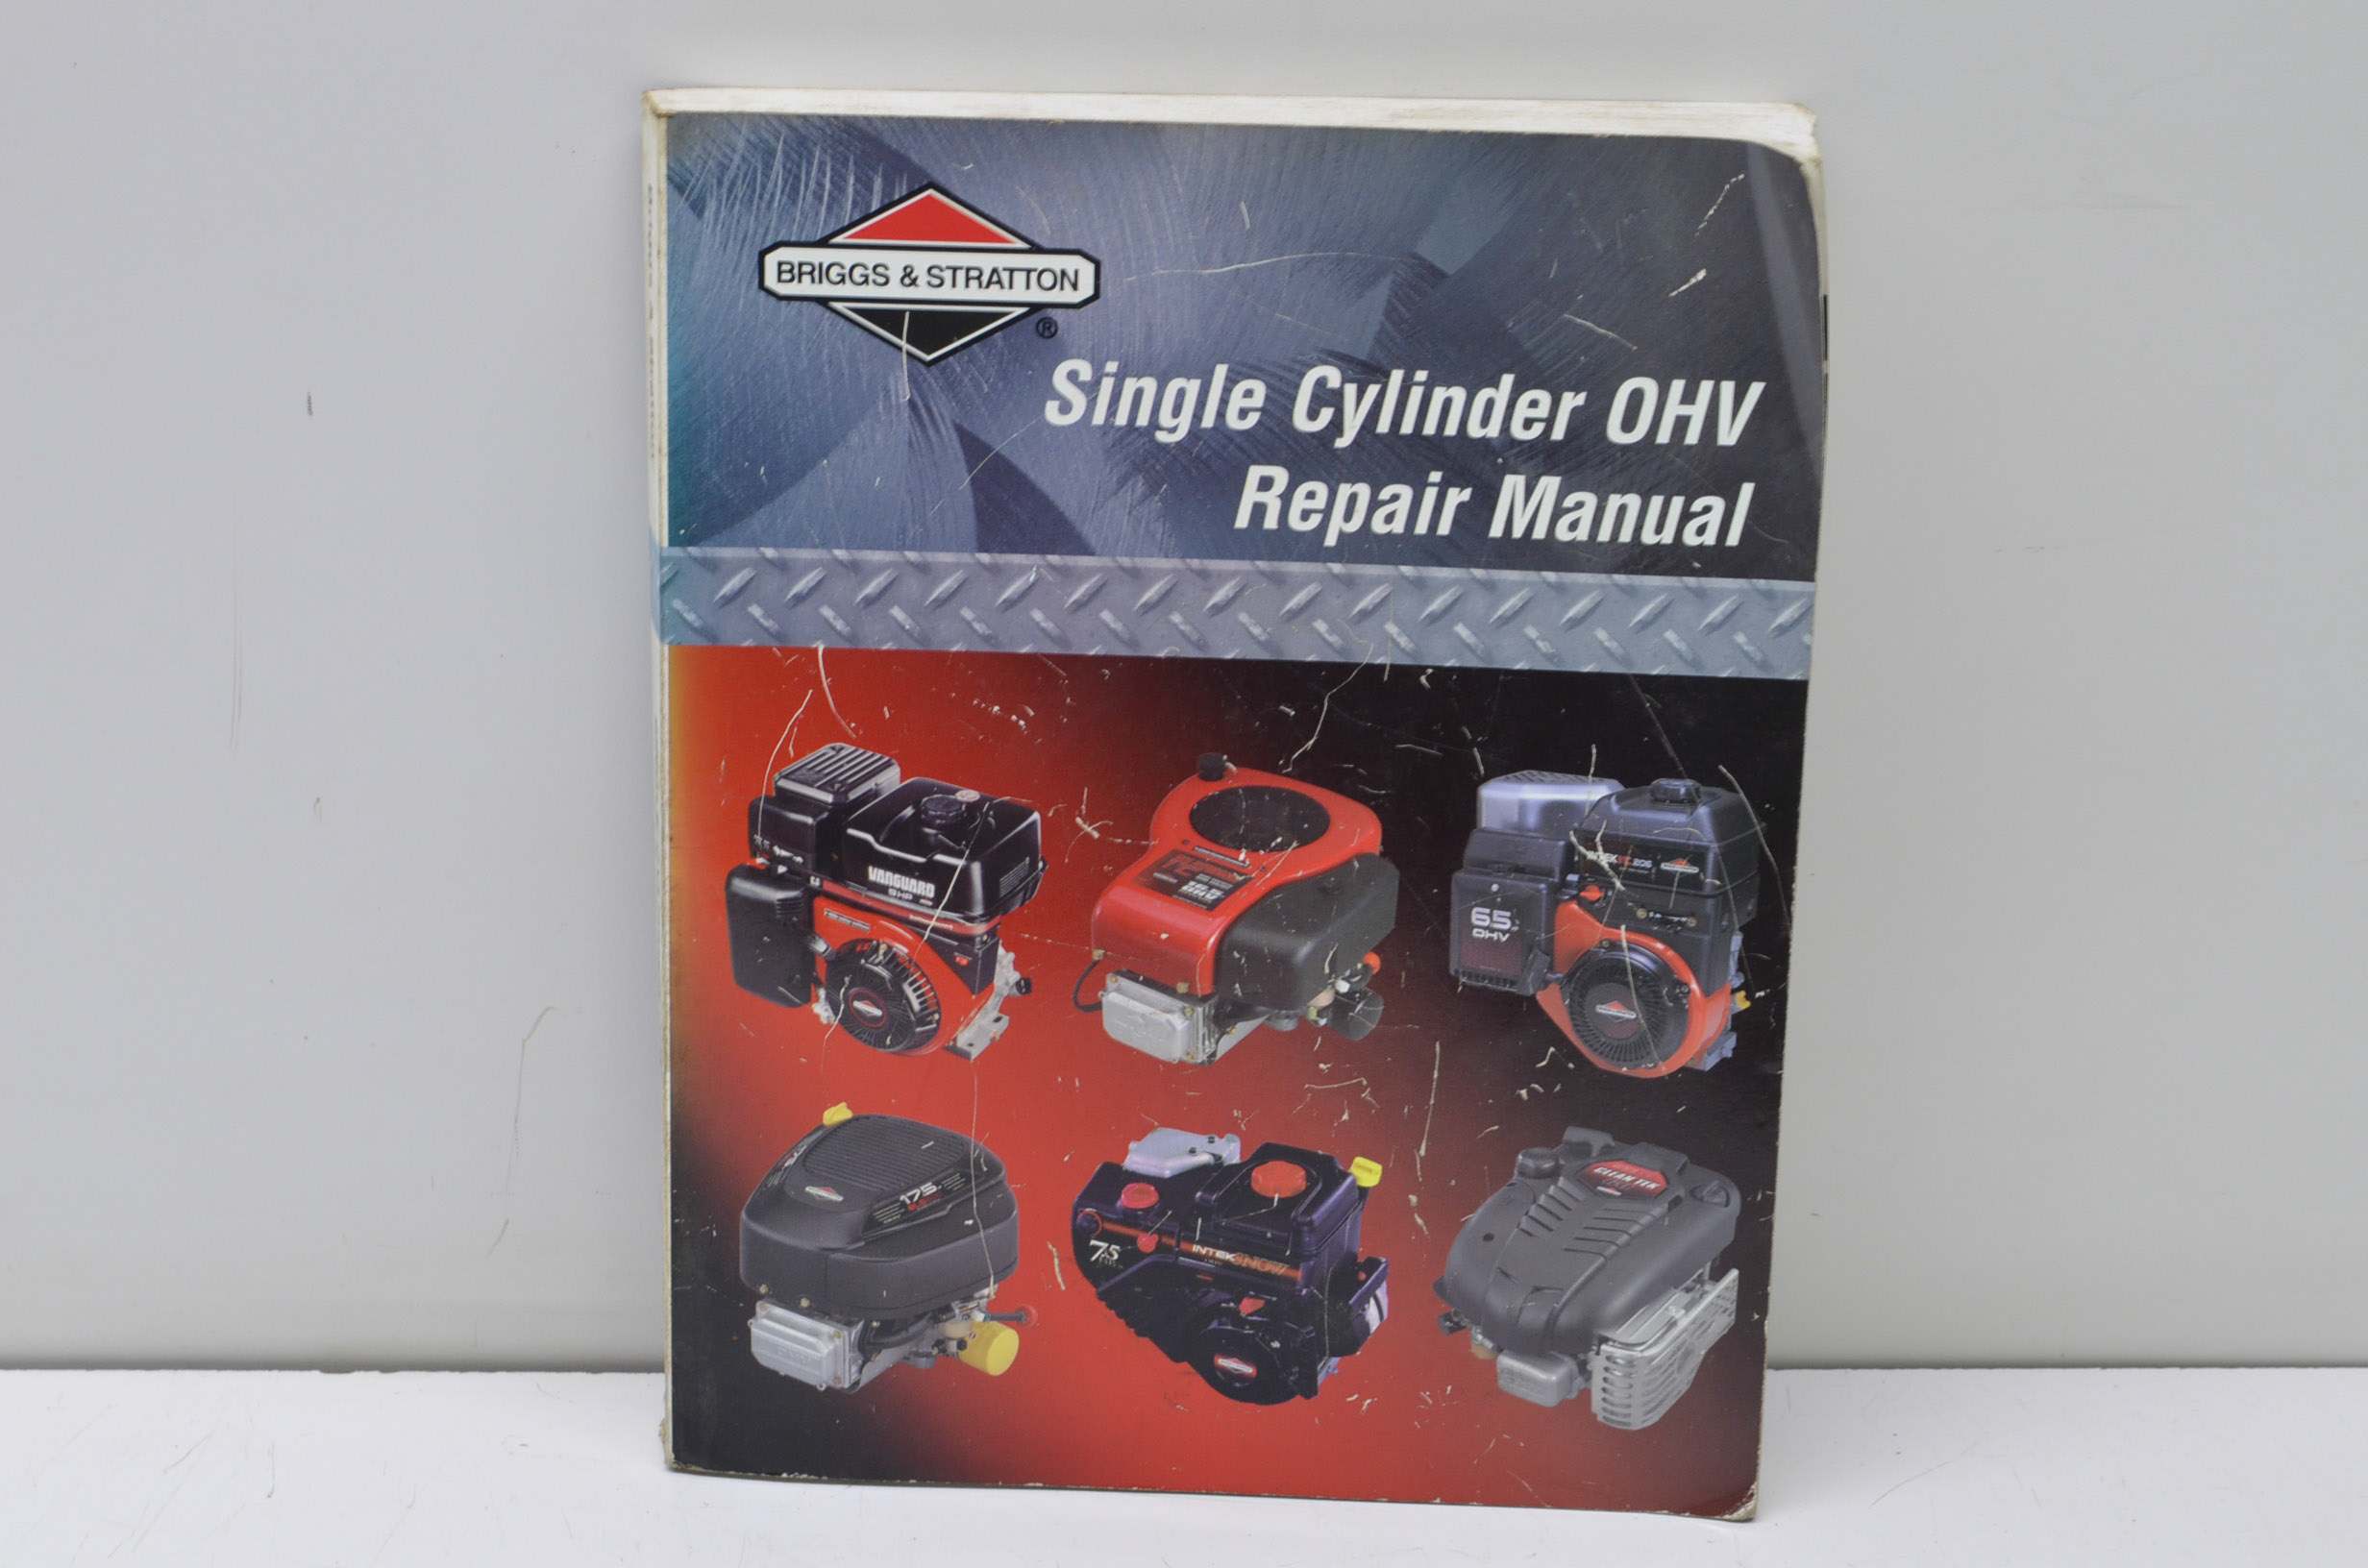 briggs stratton 272147 4 02 single cylinder ohv repair manual qty rh walmart com Briggs and Stratton Engine Troubleshooting Briggs and Stratton Number Lookup